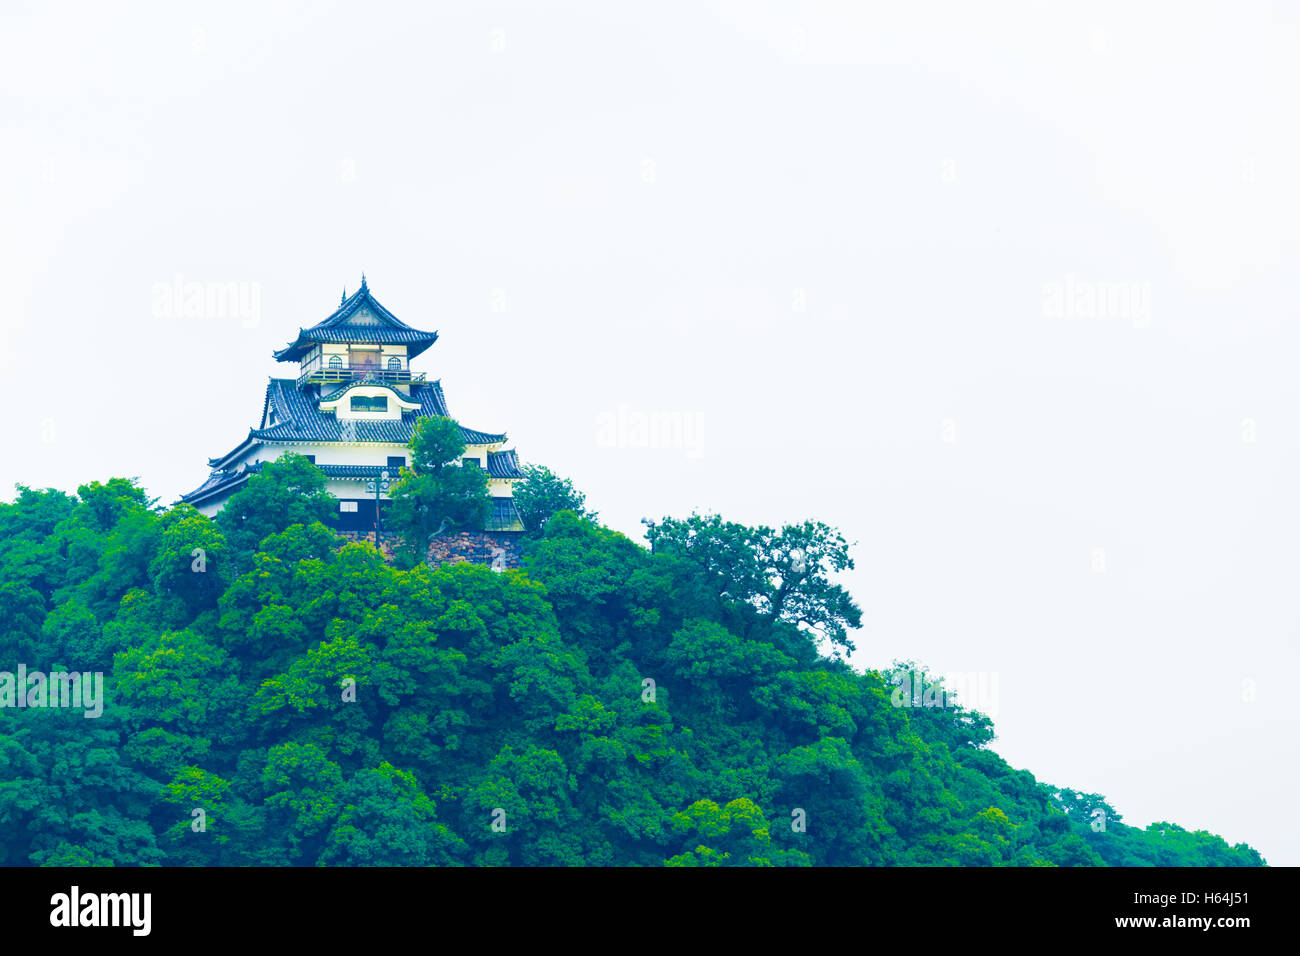 Telephoto closeup facade of Inuyama Castle on overcast day atop hill forest in Gifu Prefecture, Japan. Horizontal - Stock Image